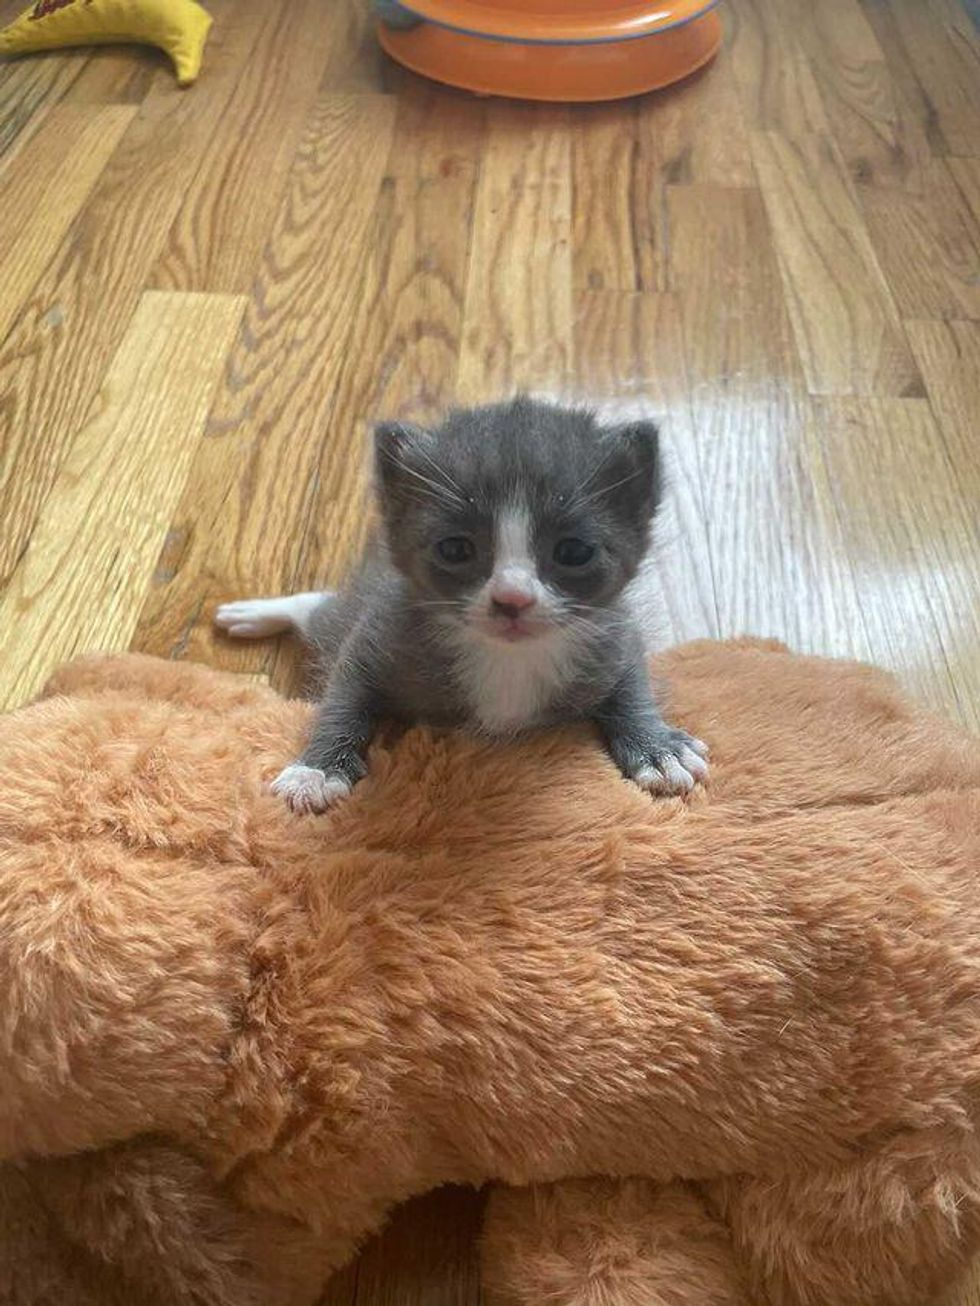 Kitten Waits With Cat Mom in Outdoor Shelter Till Someone Finds Them and Turns Their Lives Around